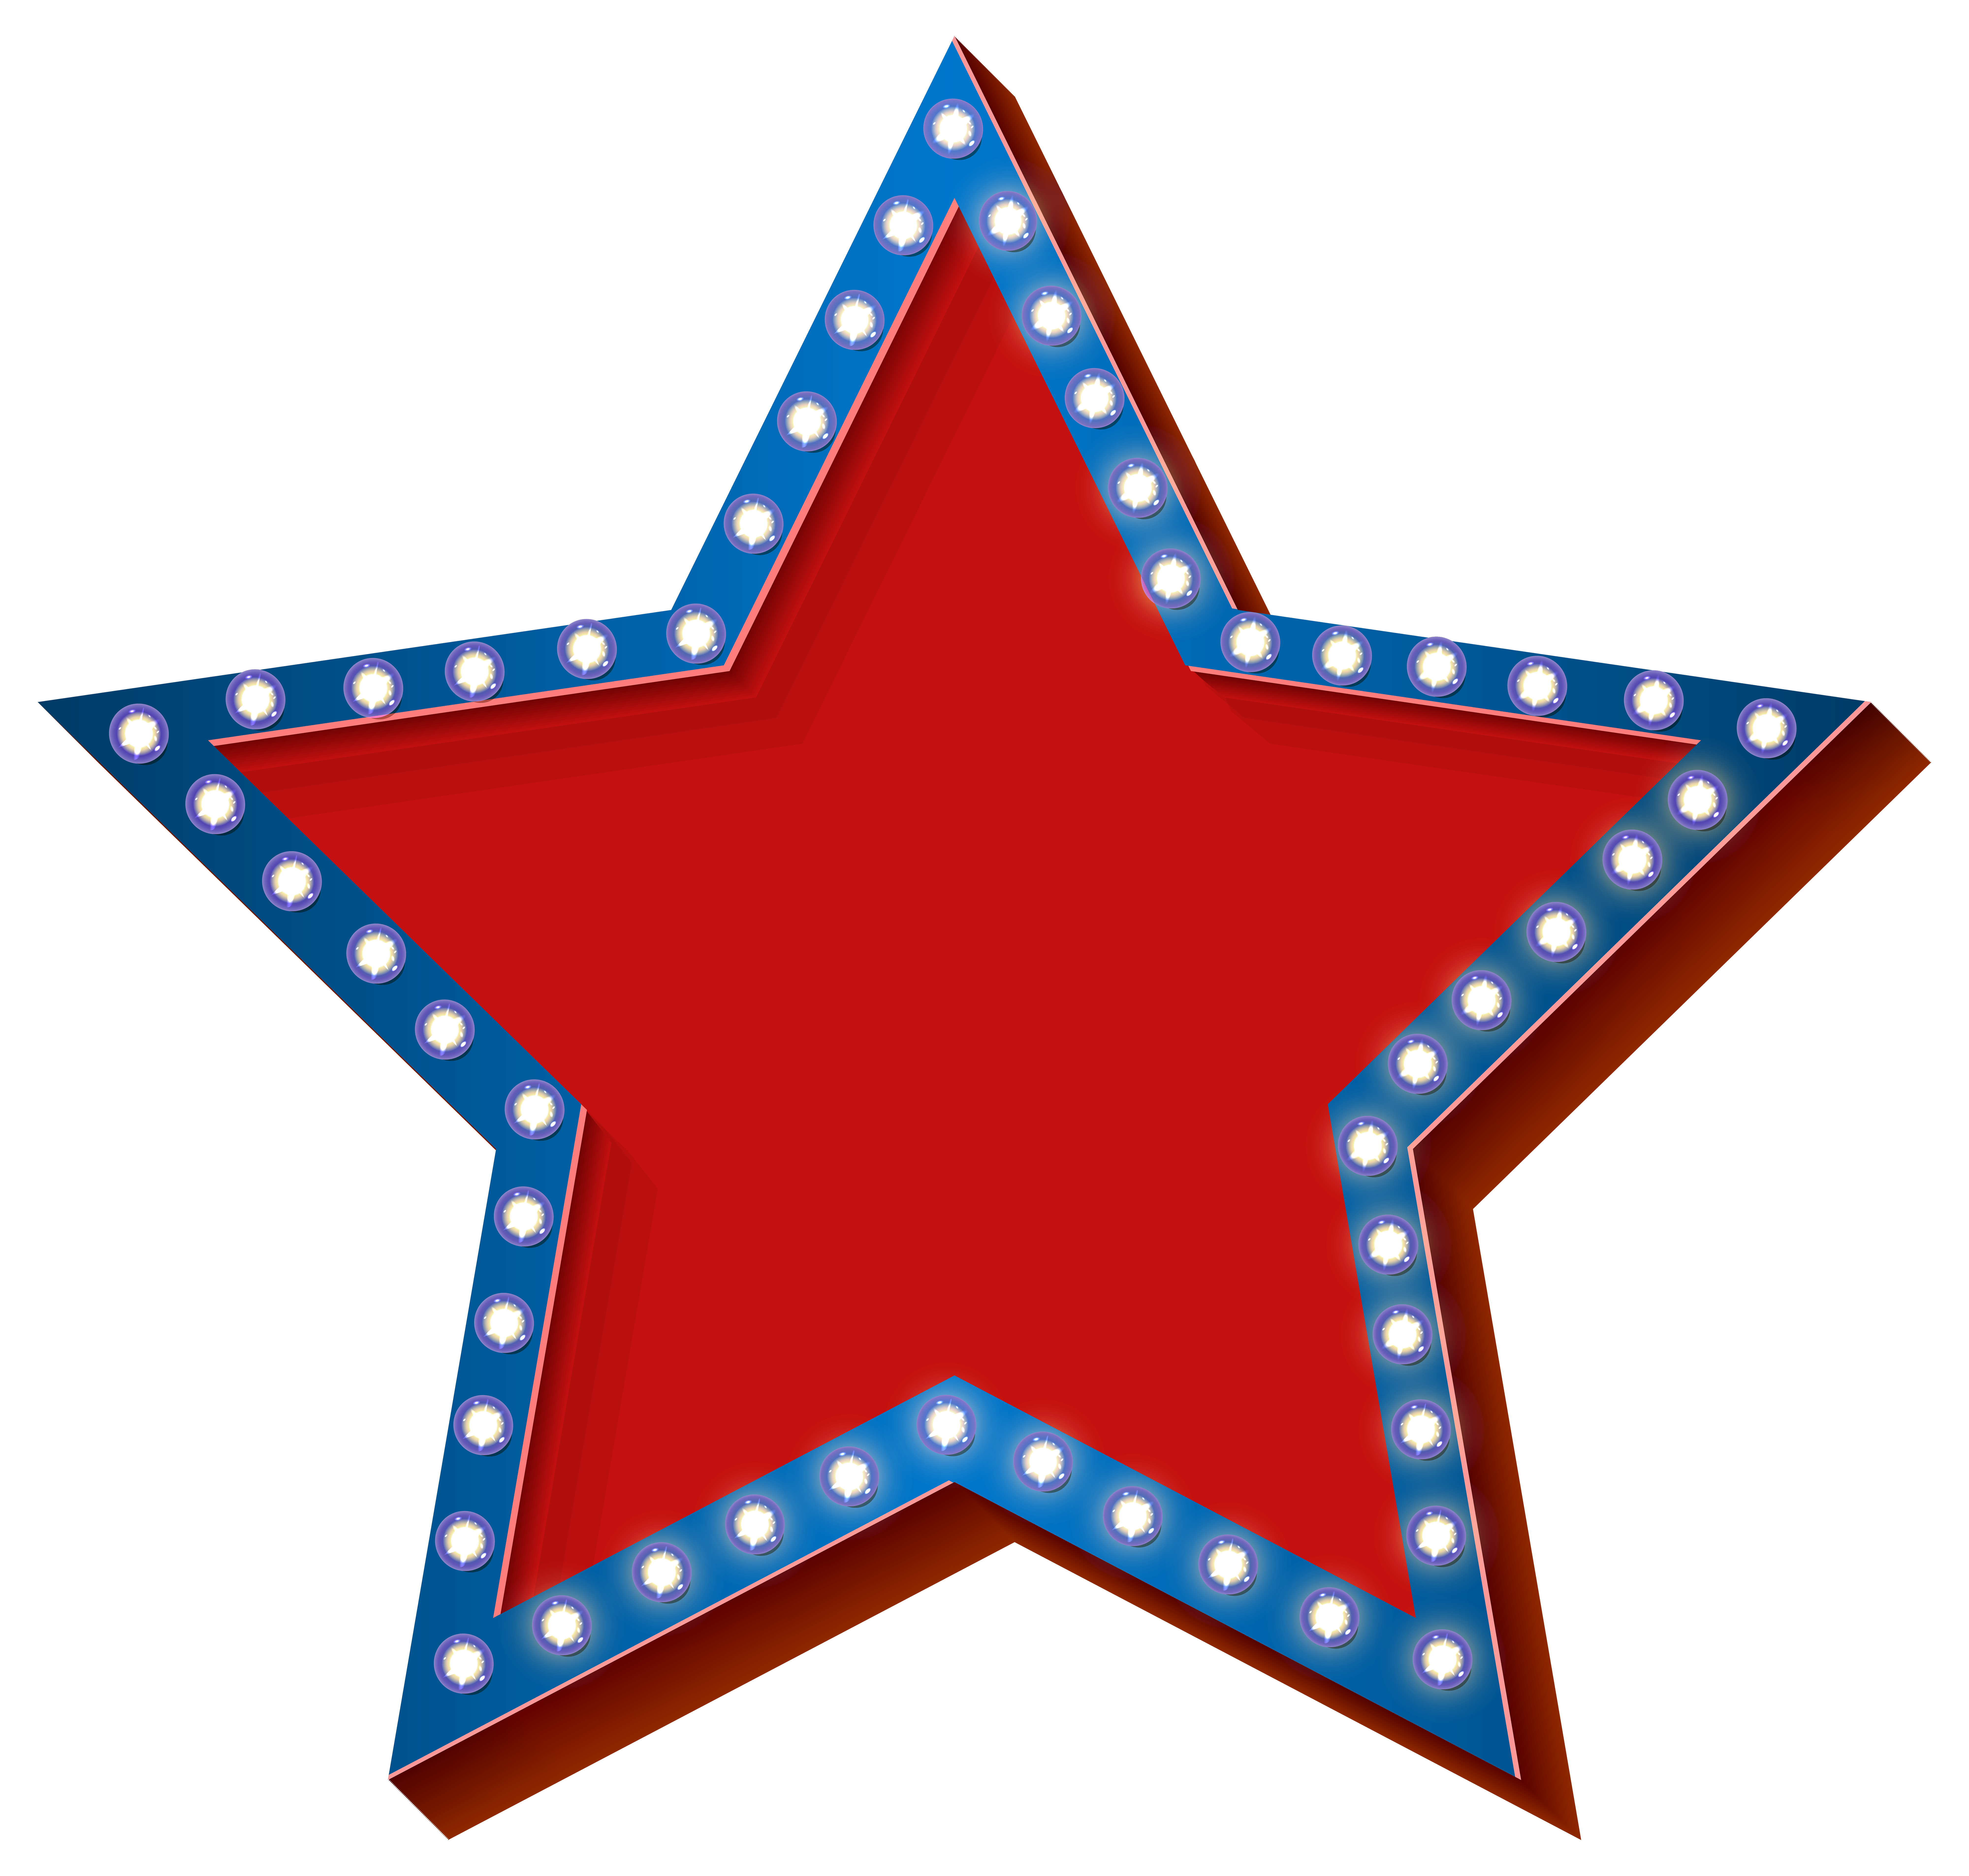 jpg free download Chevron clipart star. With lights transparent png.